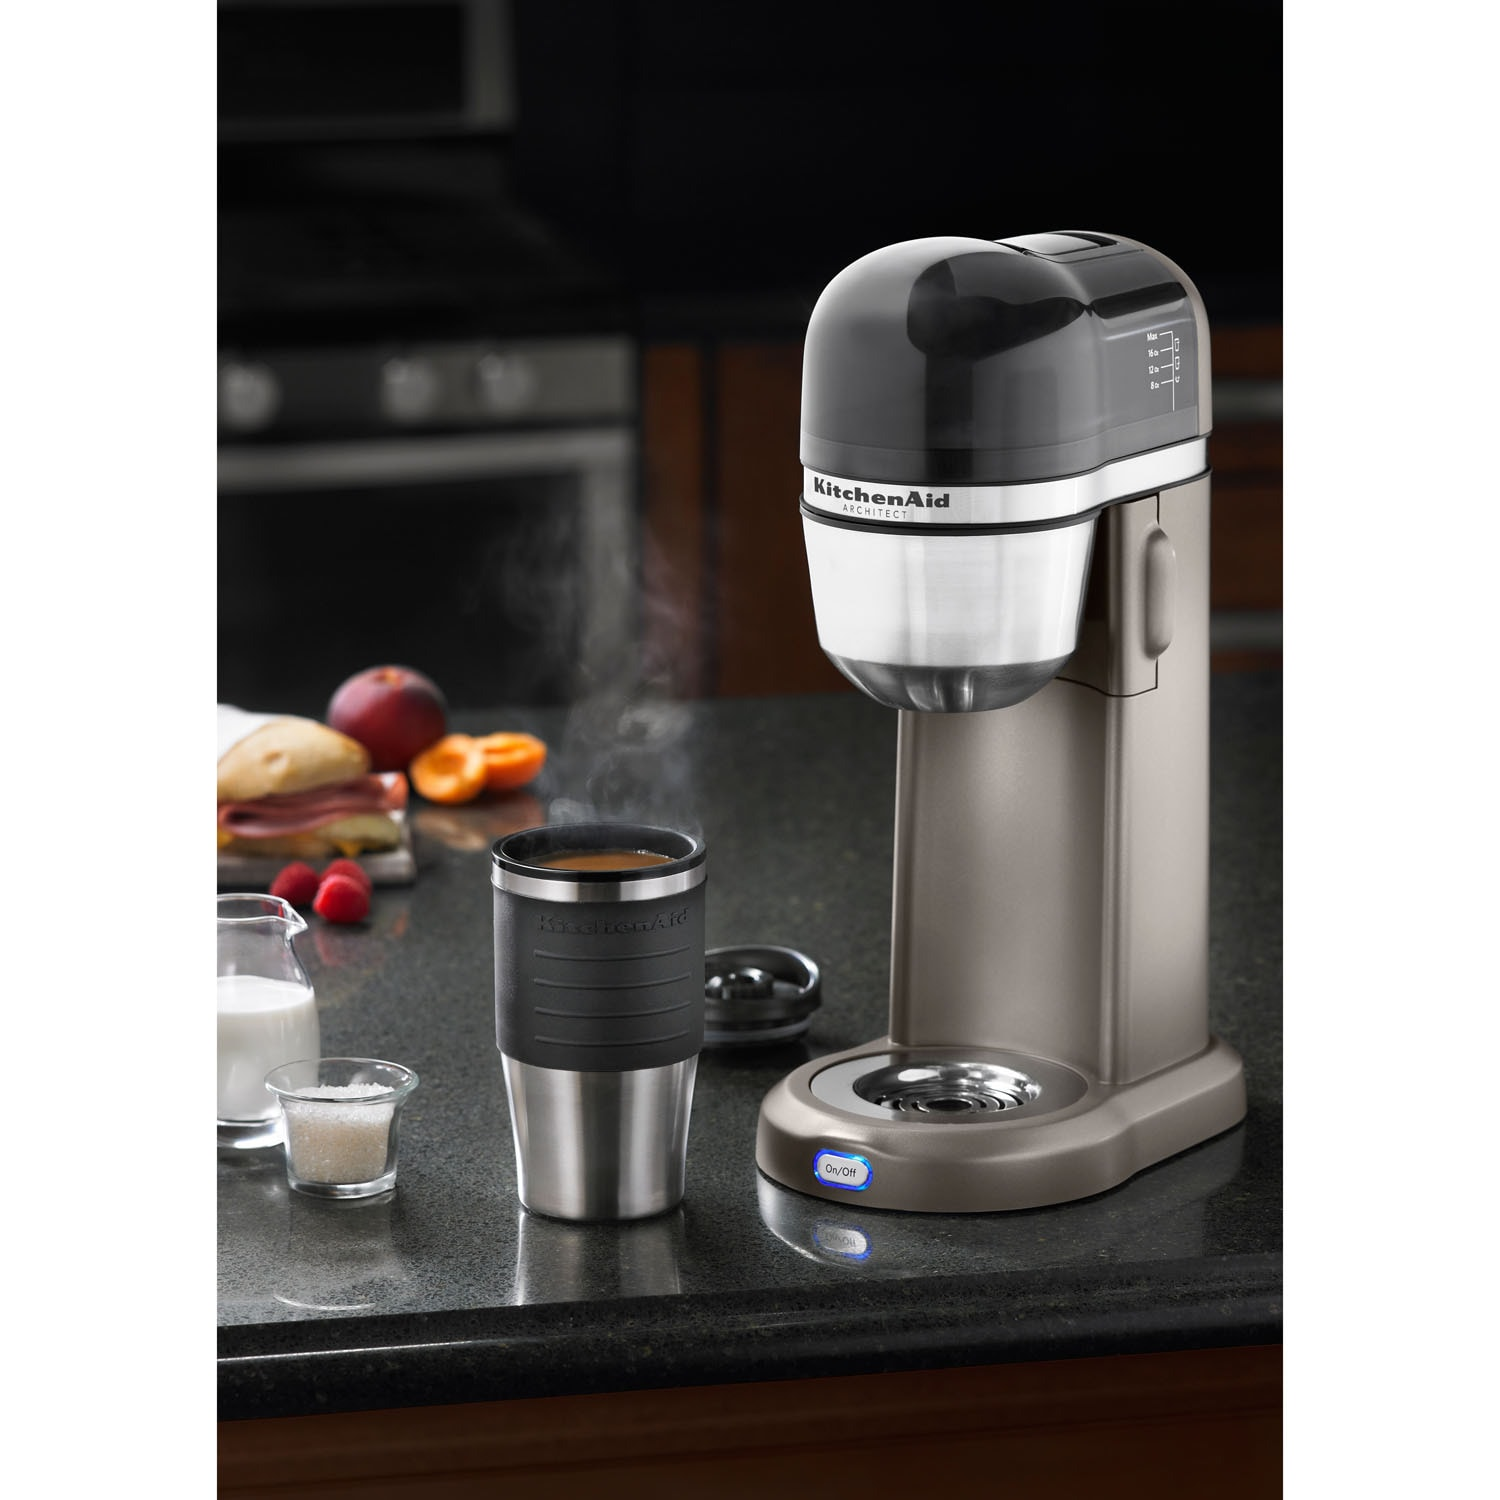 Shop Kitchenaid Kcm0402acs 4 Cup Personal Coffee Maker With